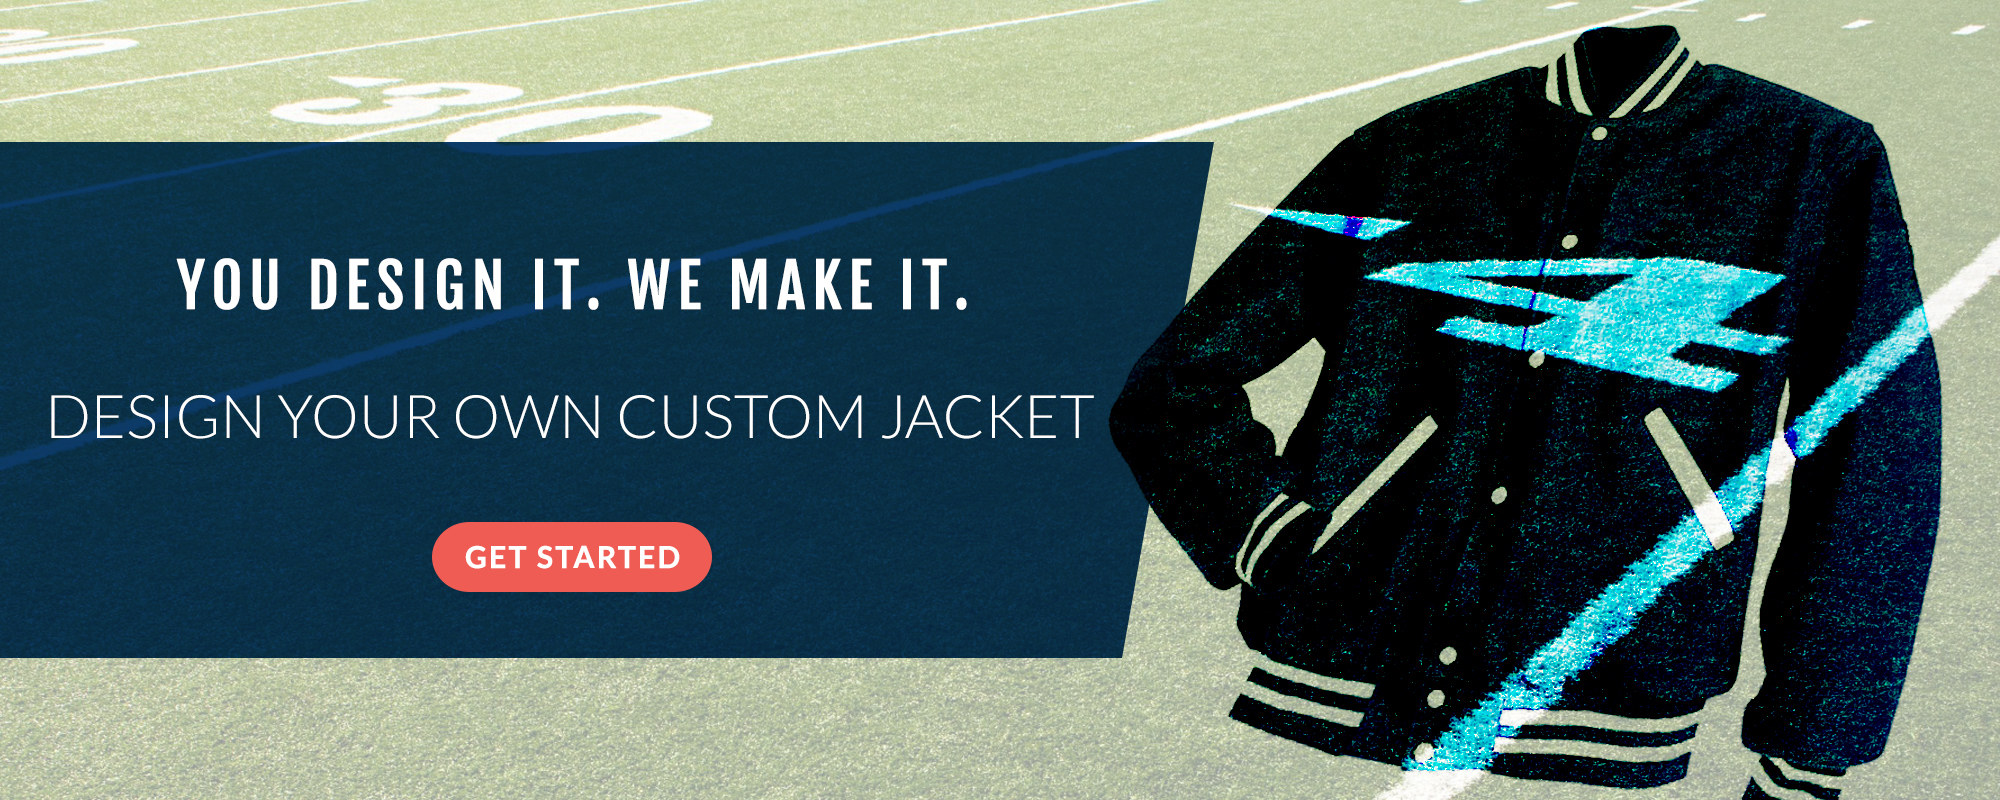 Design your School jacket